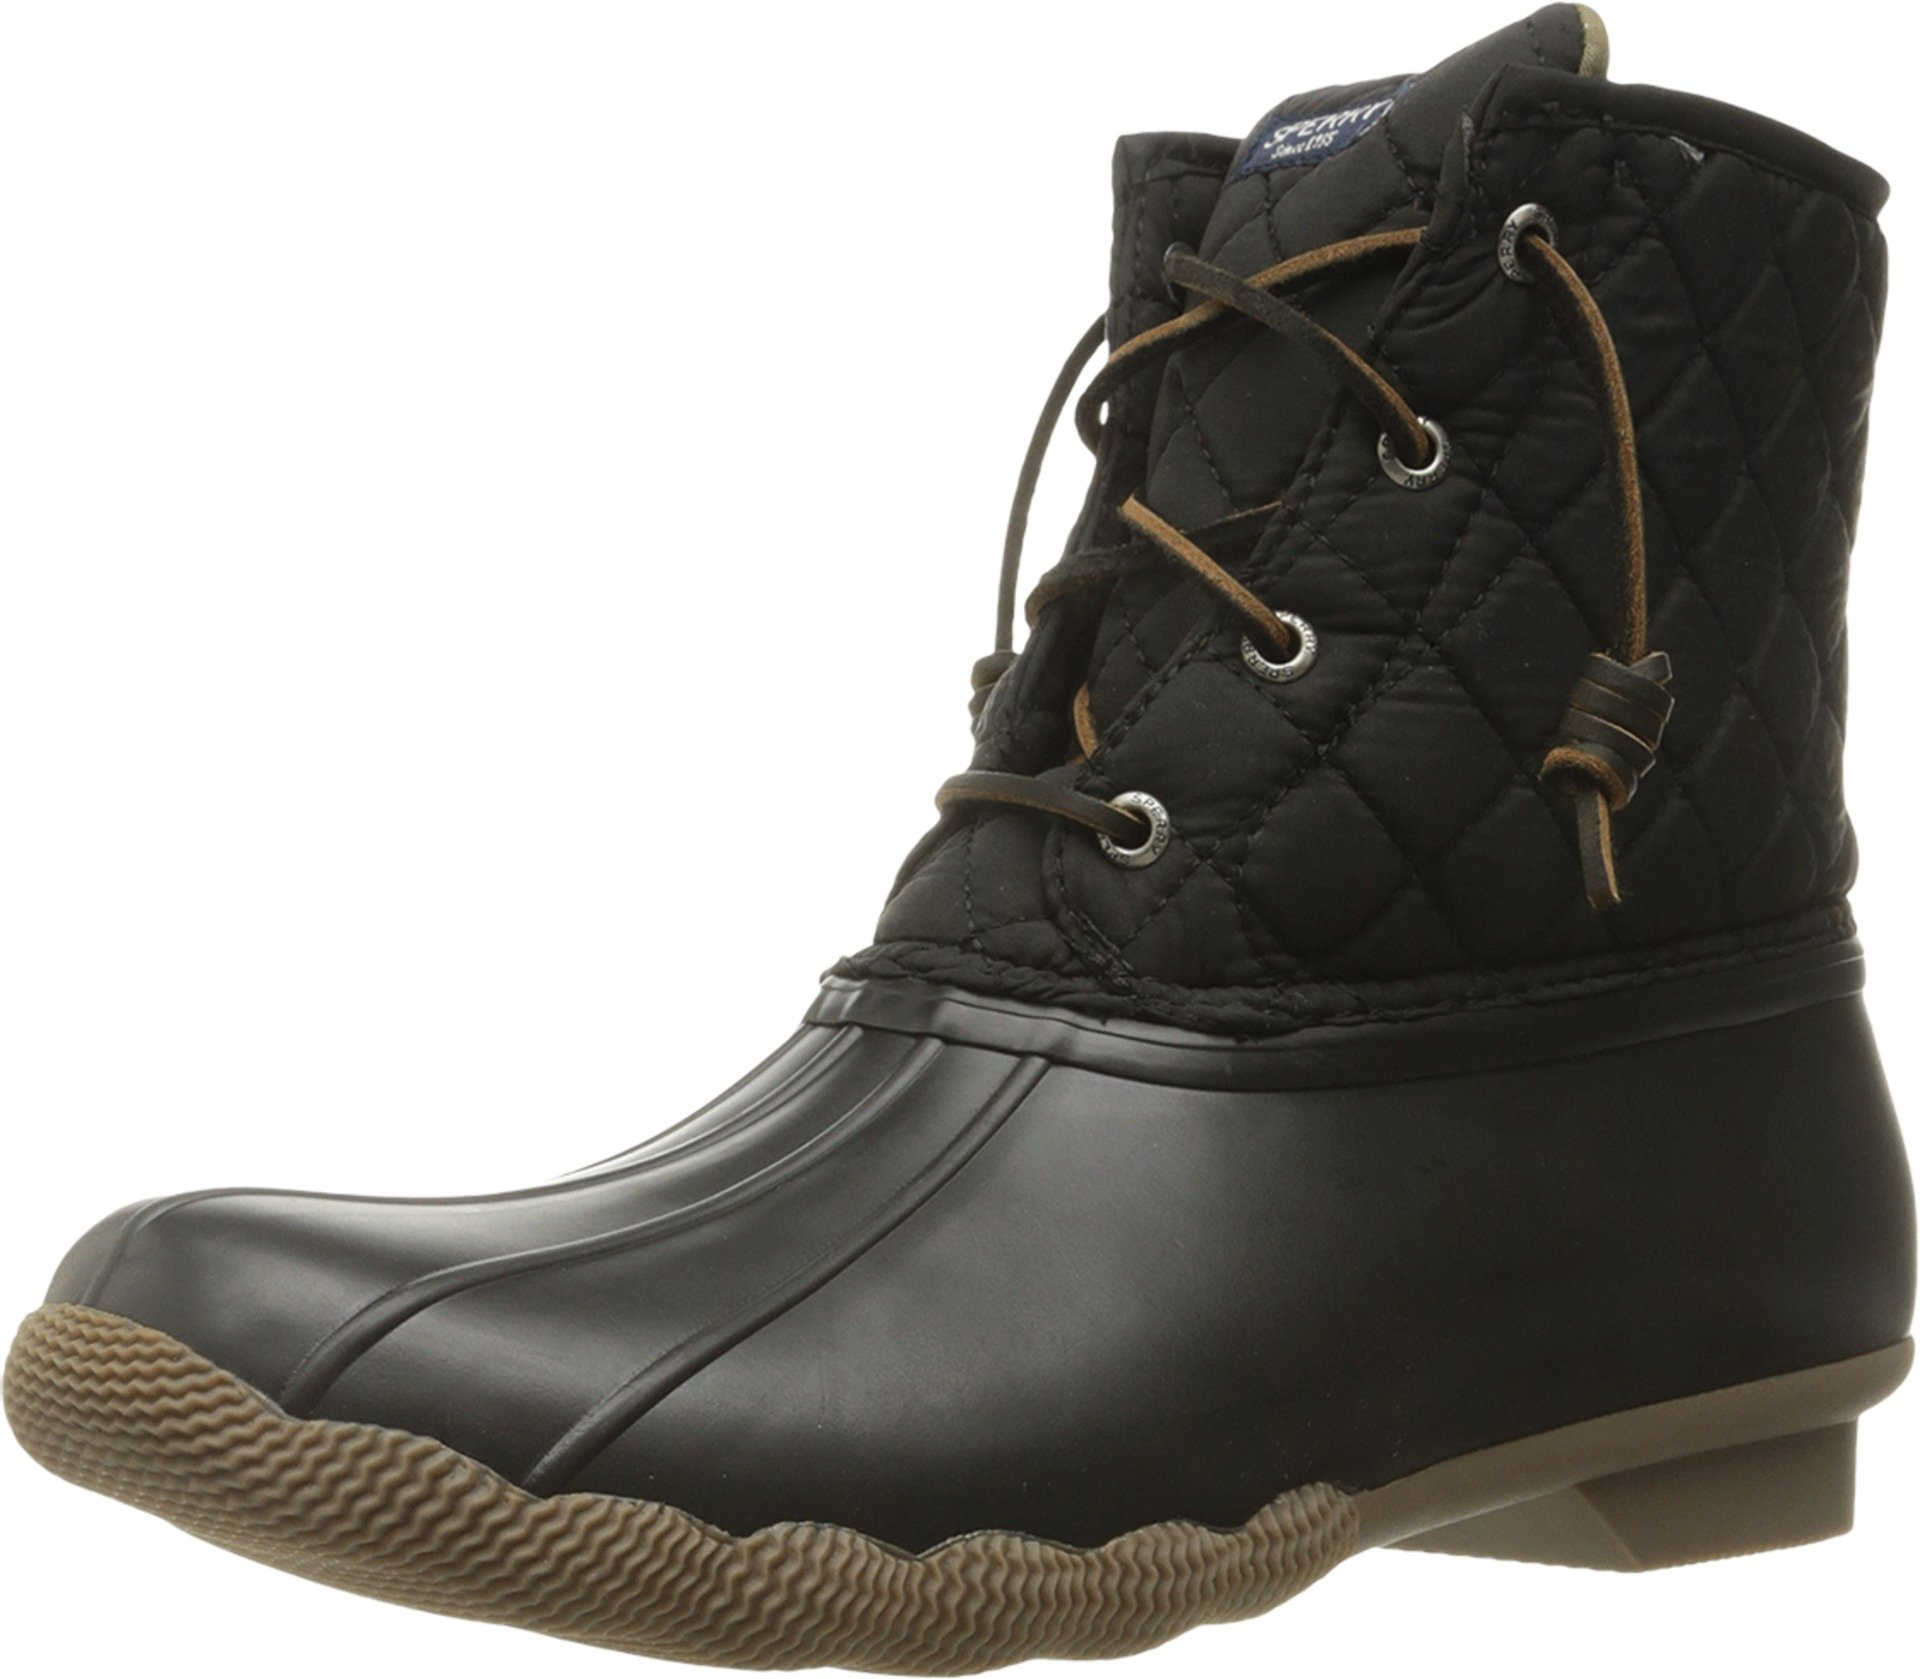 Sperry Top-Sider Women's Saltwater Rain Boot, Black Quilted, 7.5 M US